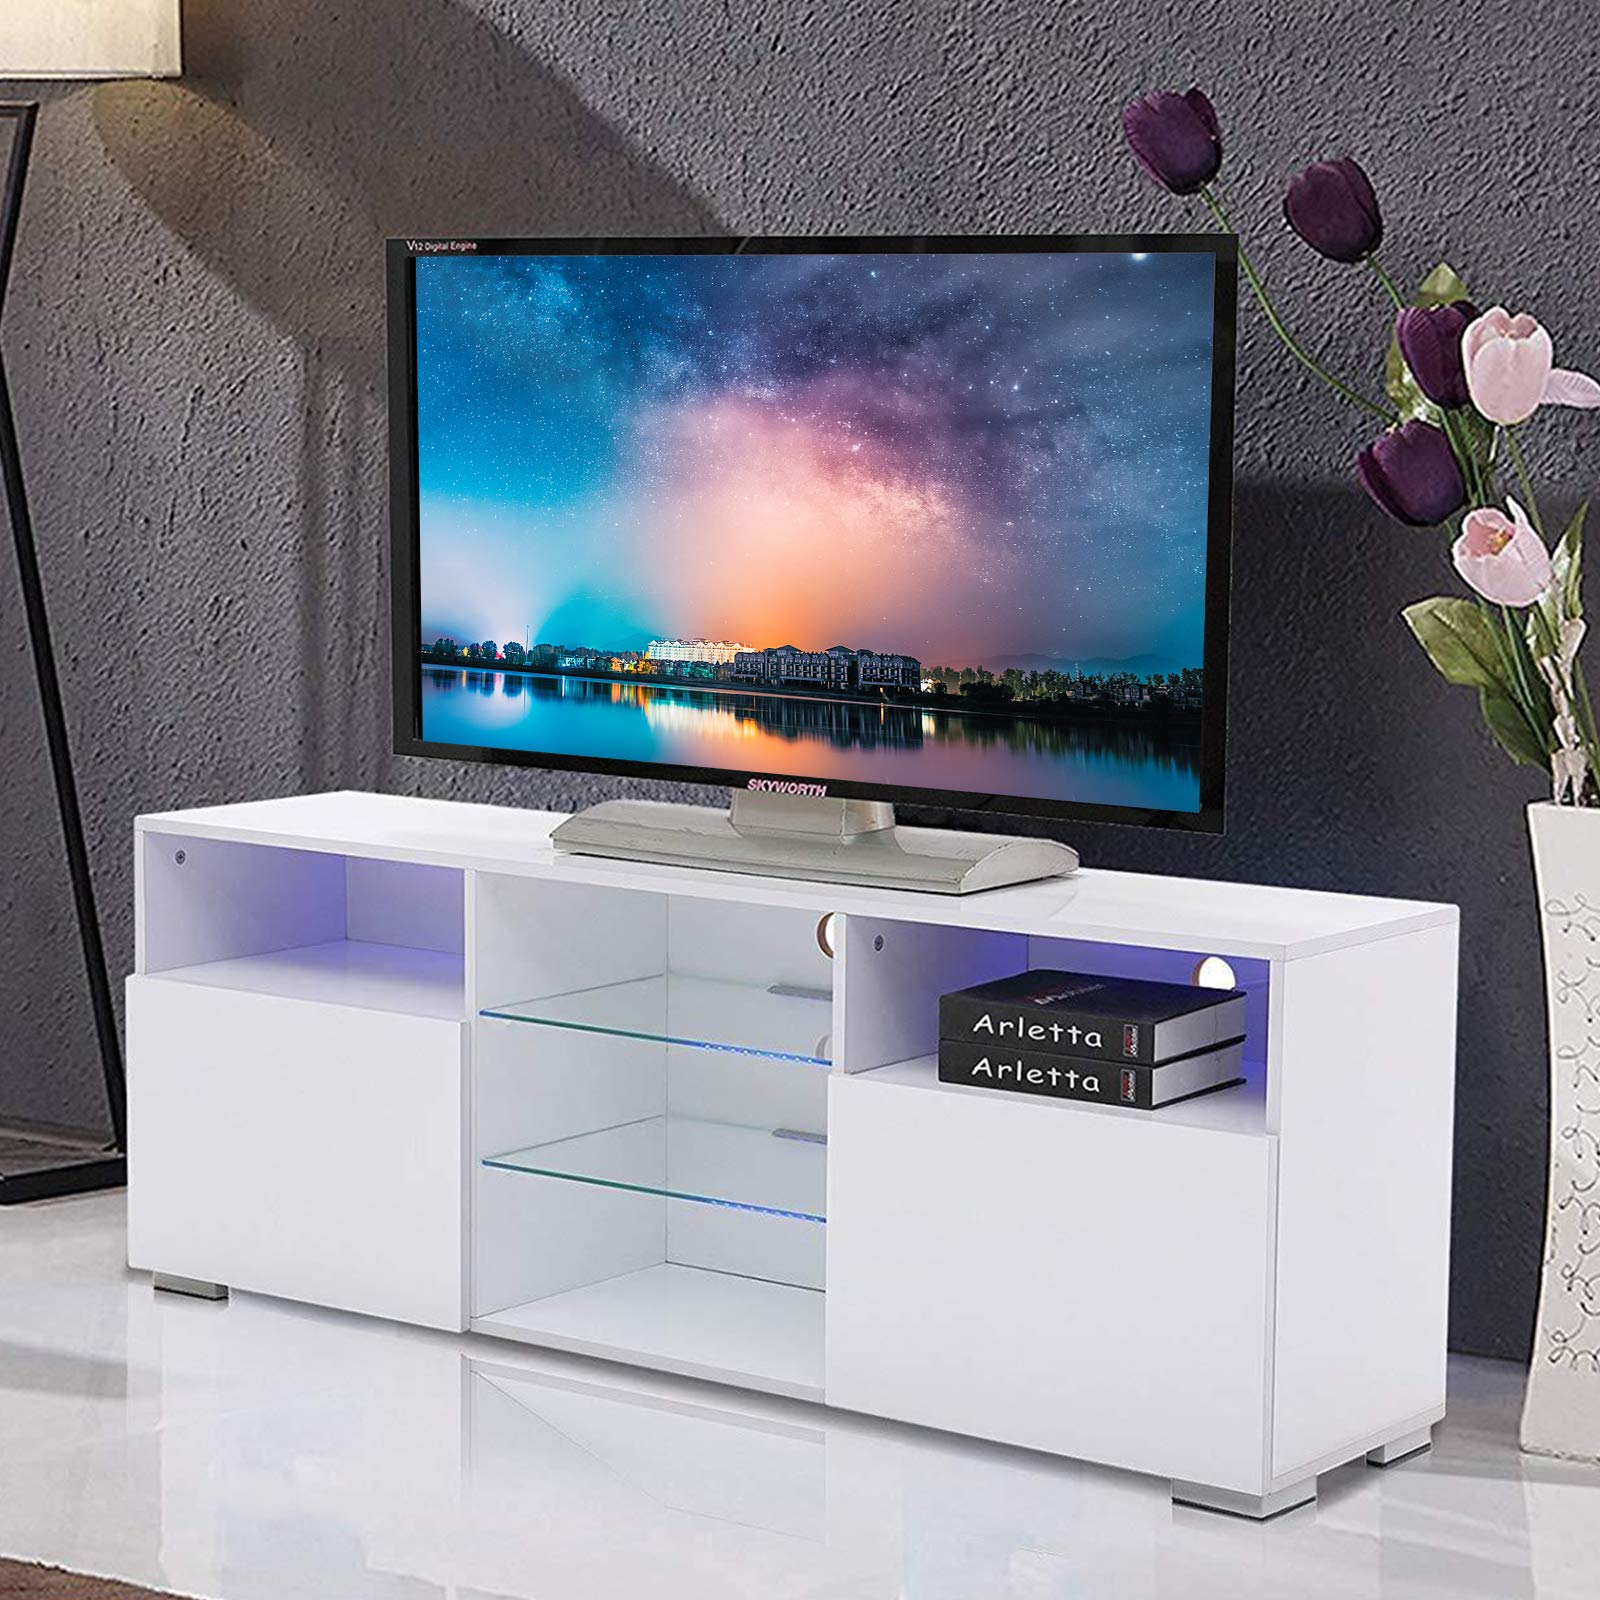 mecor High Gloss TV Stand with LED Lights, Modern White TV Stand for 58 Inch TV Console Storage Cabinet with 3 Layers, 2 Doors and Open Shelf by mecor